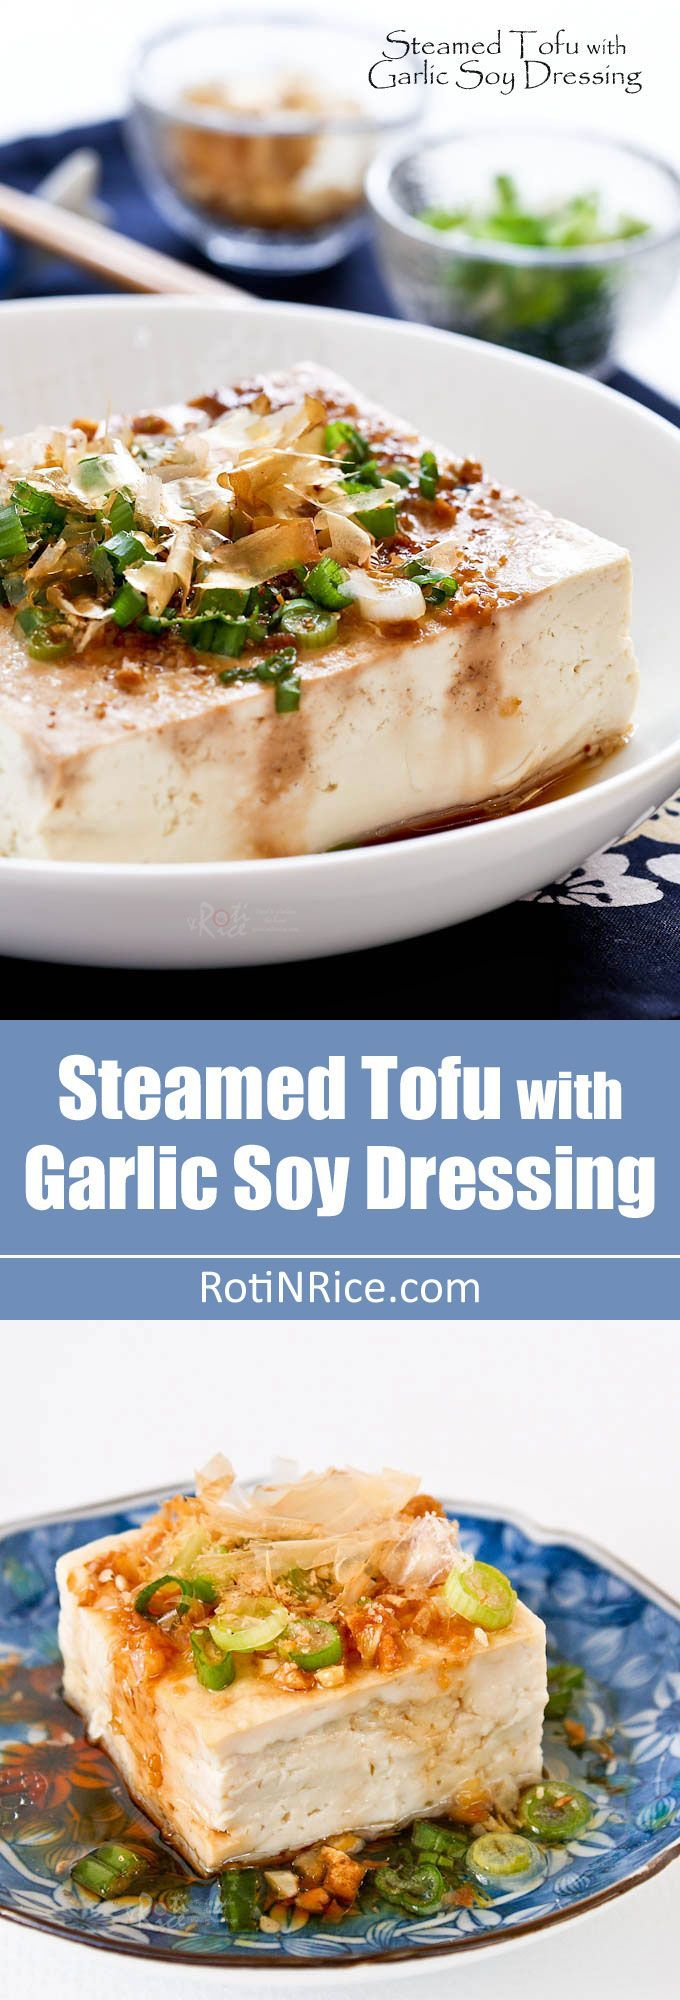 Steamed Tofu with Garlic Soy Dressing - a healthy delicious side dish to go with rice. Can be prepared in under 15 minutes in the microwave. Video instructions. | http://RotiNRice.com